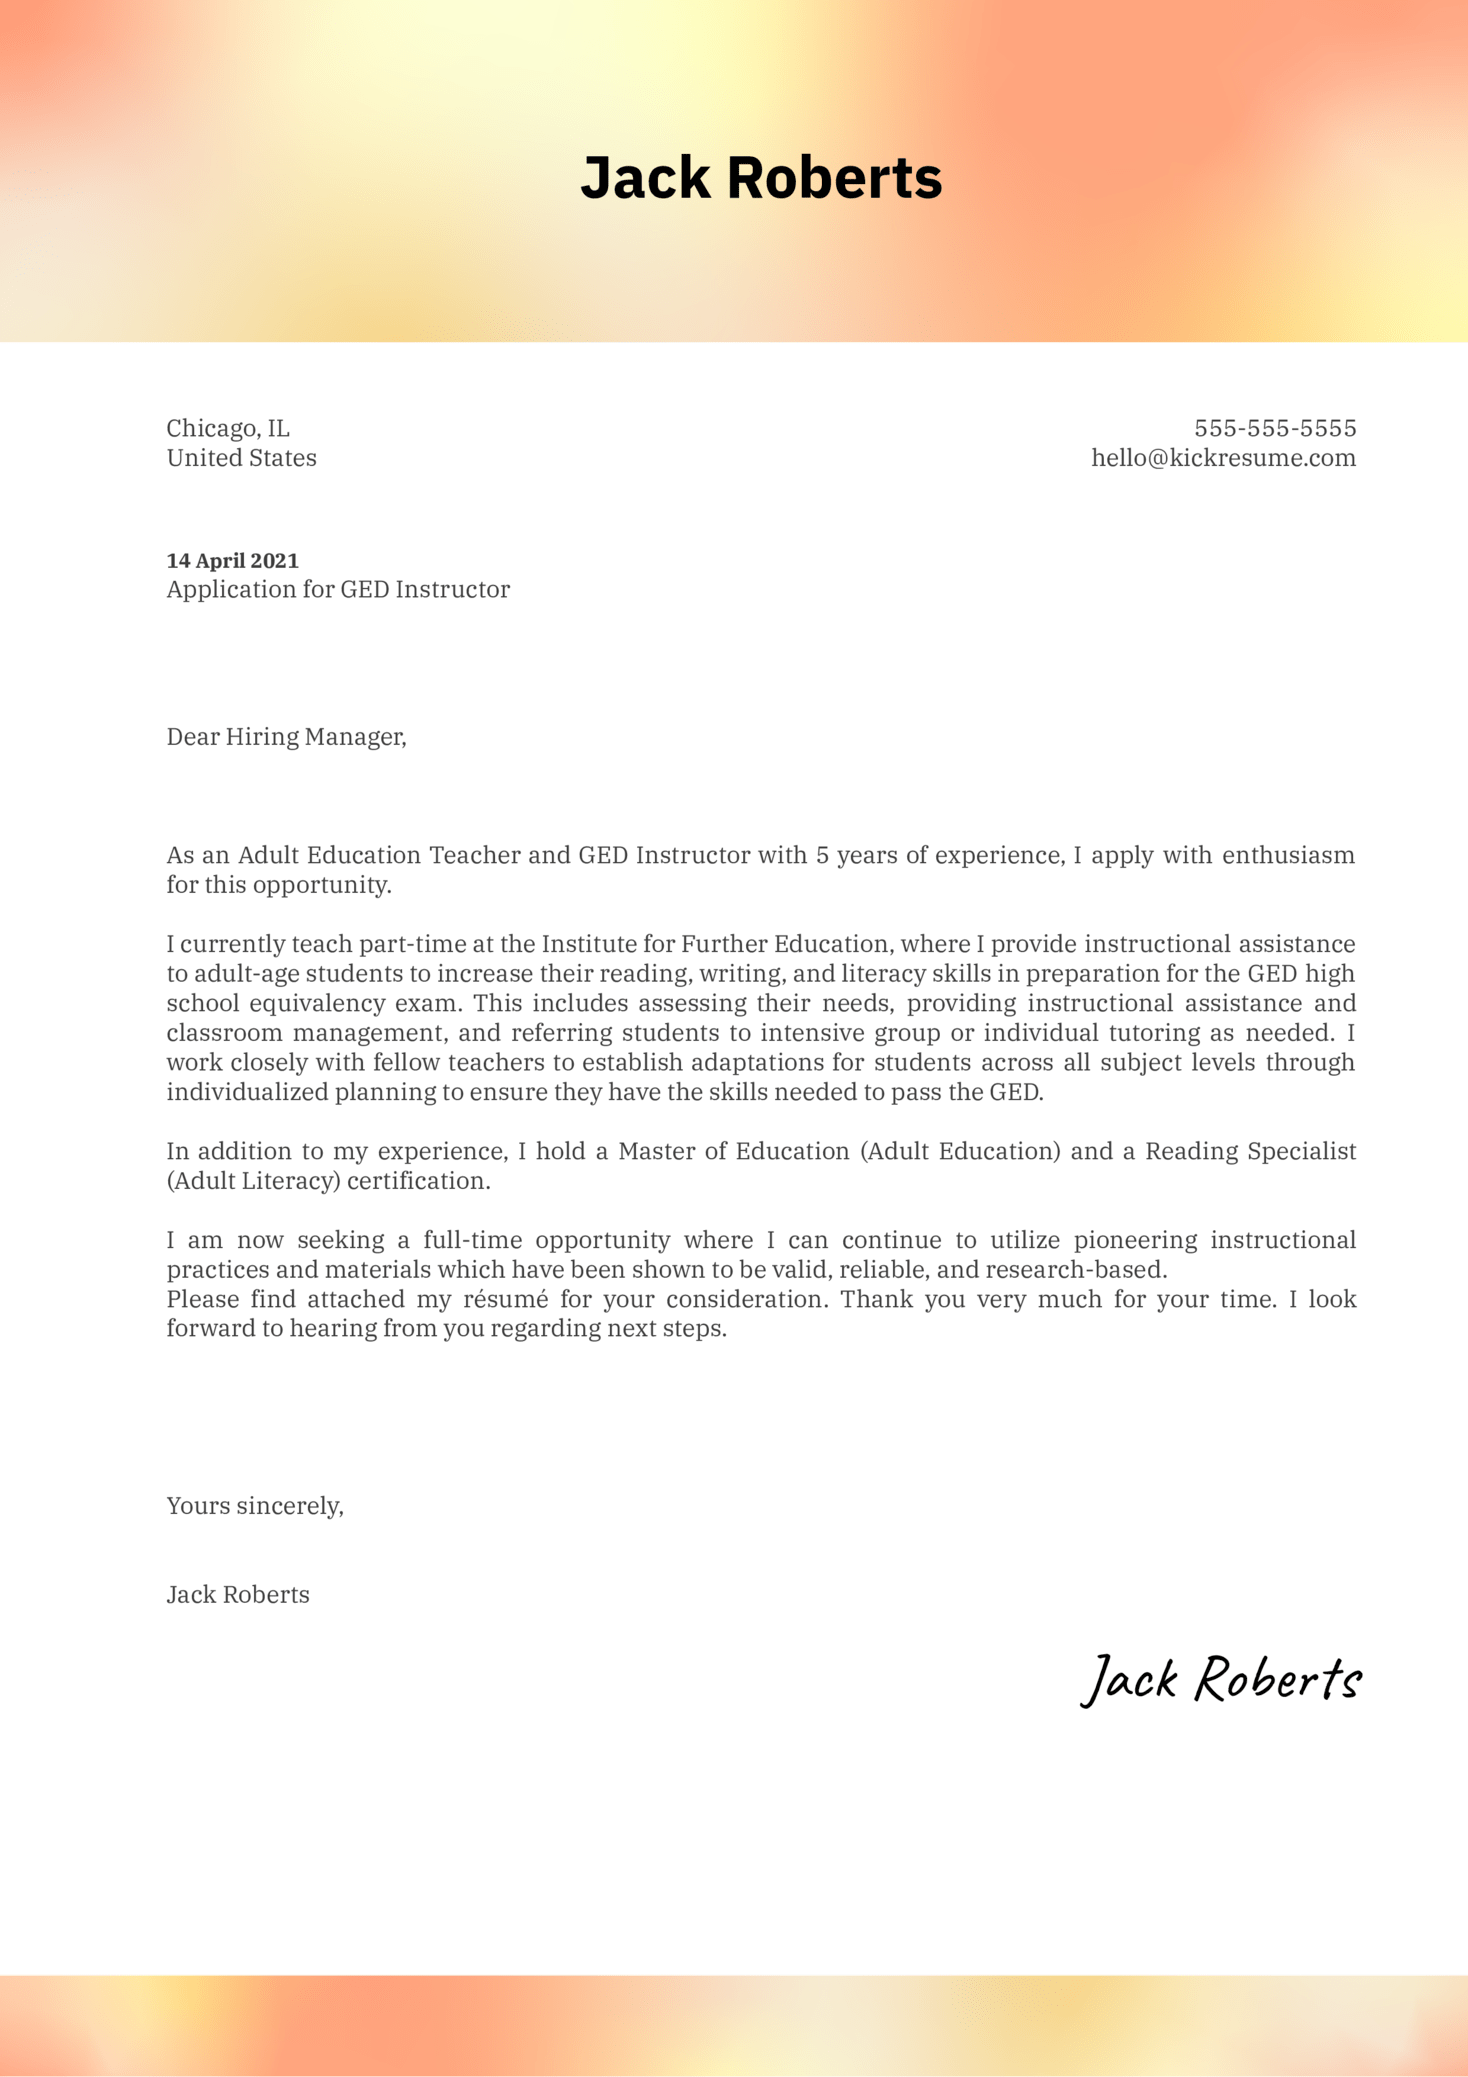 GED Instructor Cover Letter Example